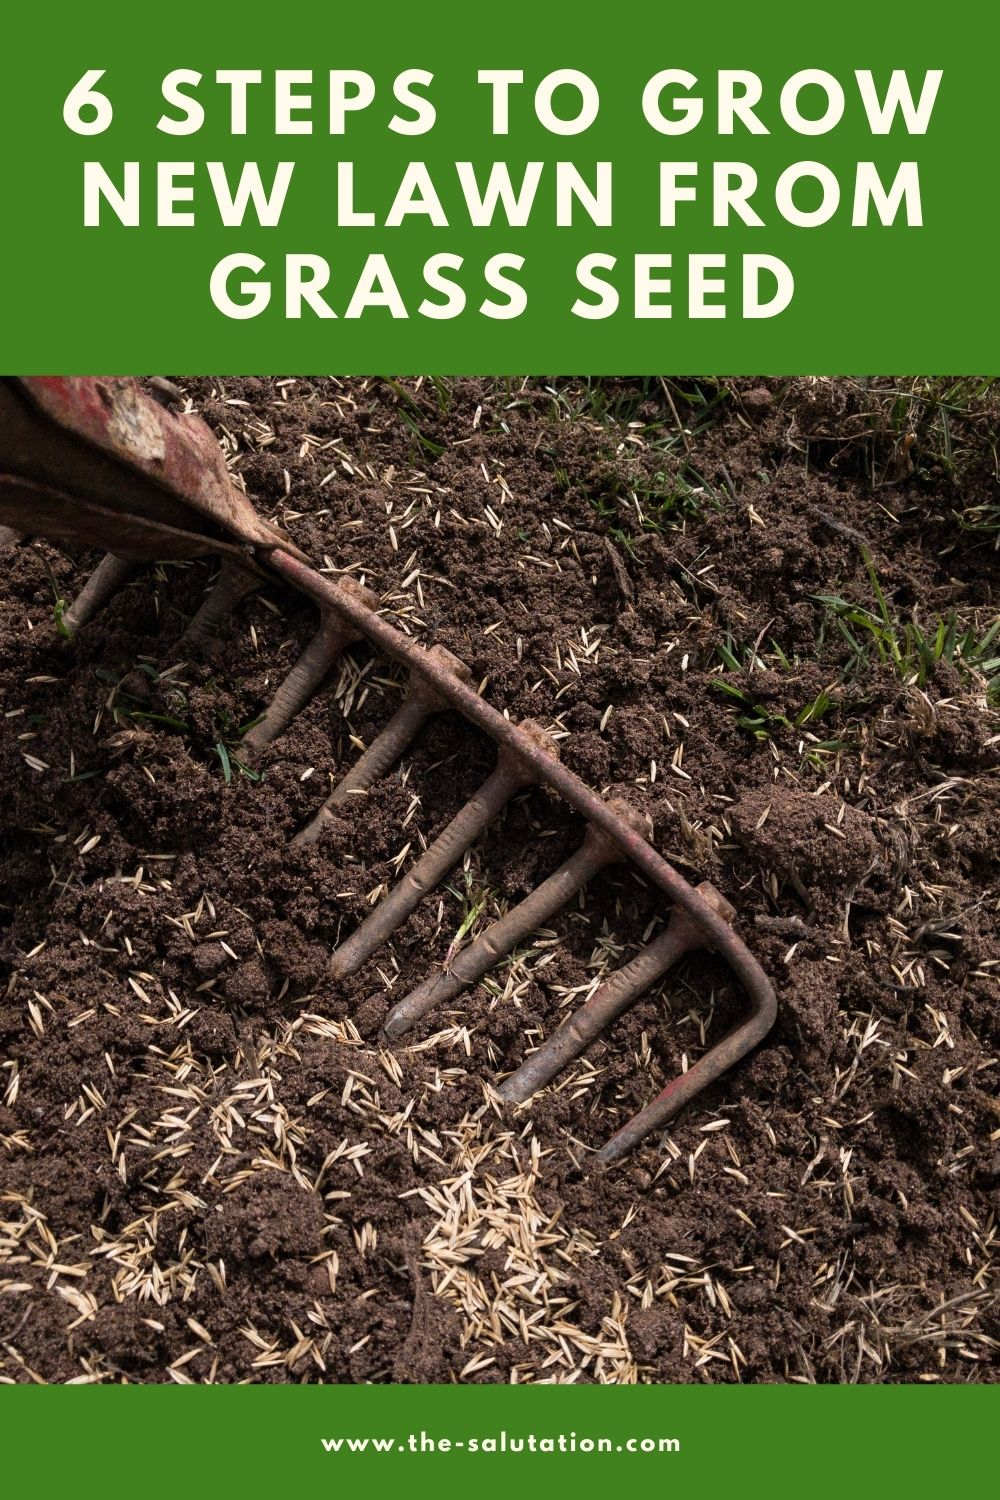 6 Steps to Grow New Lawn from Grass Seed 2